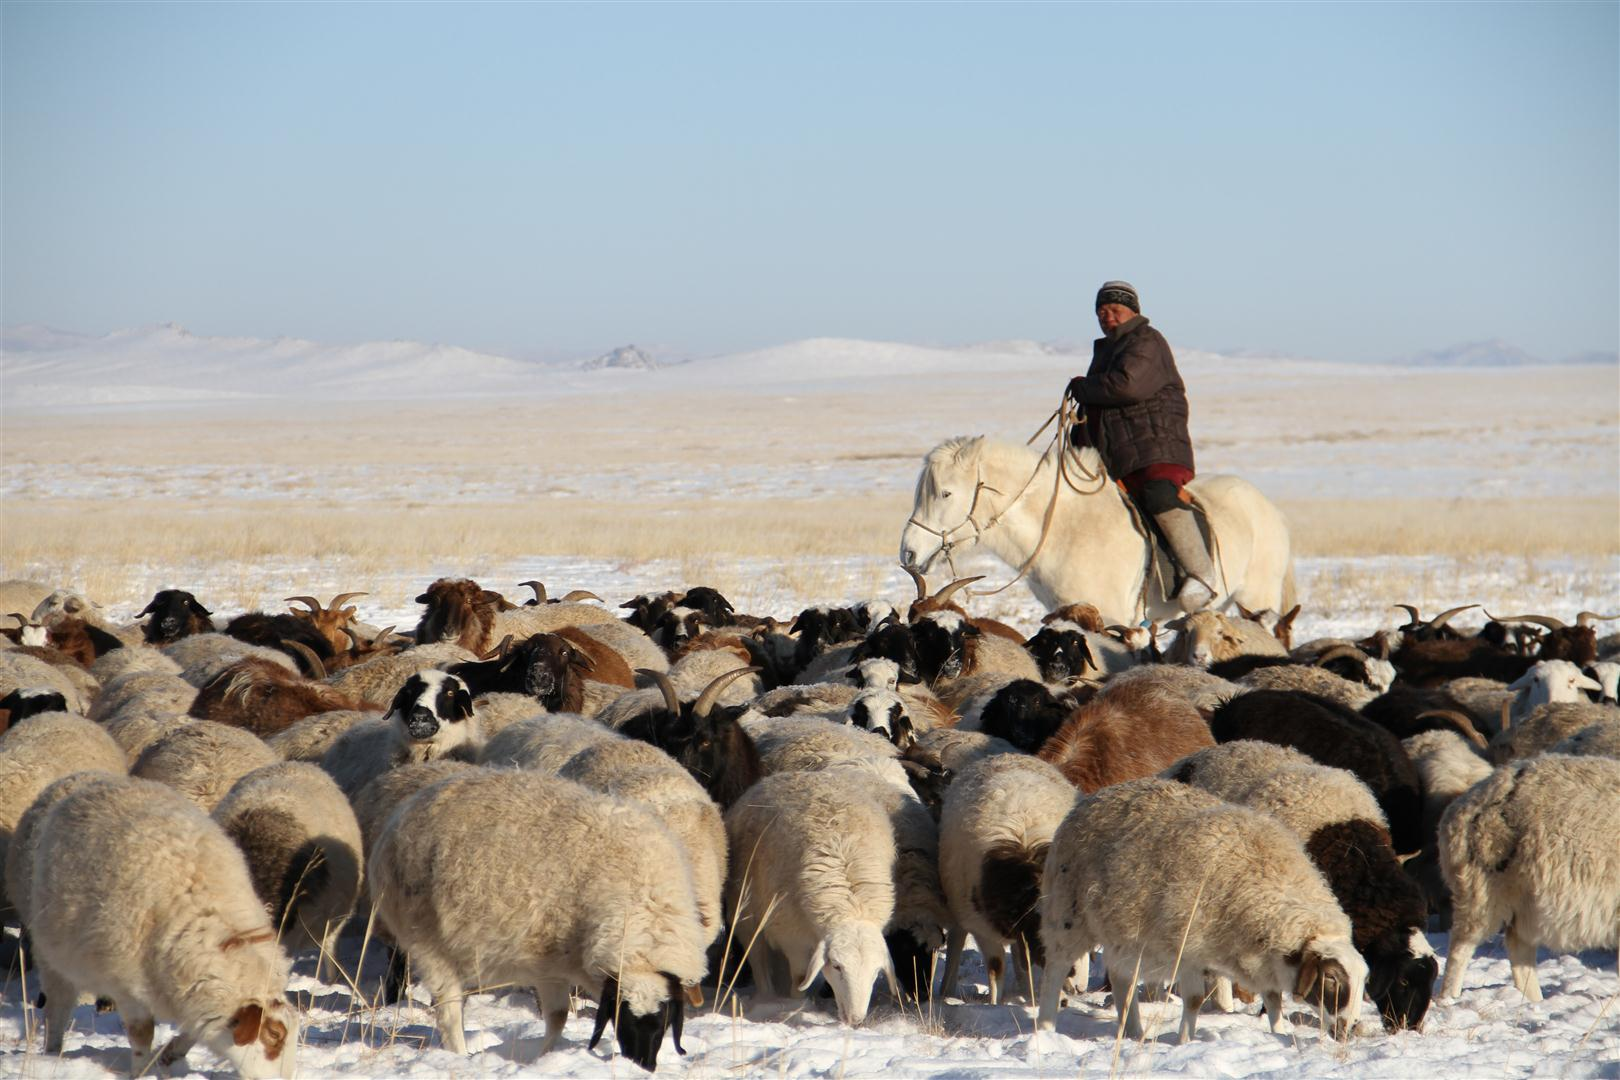 Mounted Mongolian herdsman leading his flock of sheep through snow-covered plains.